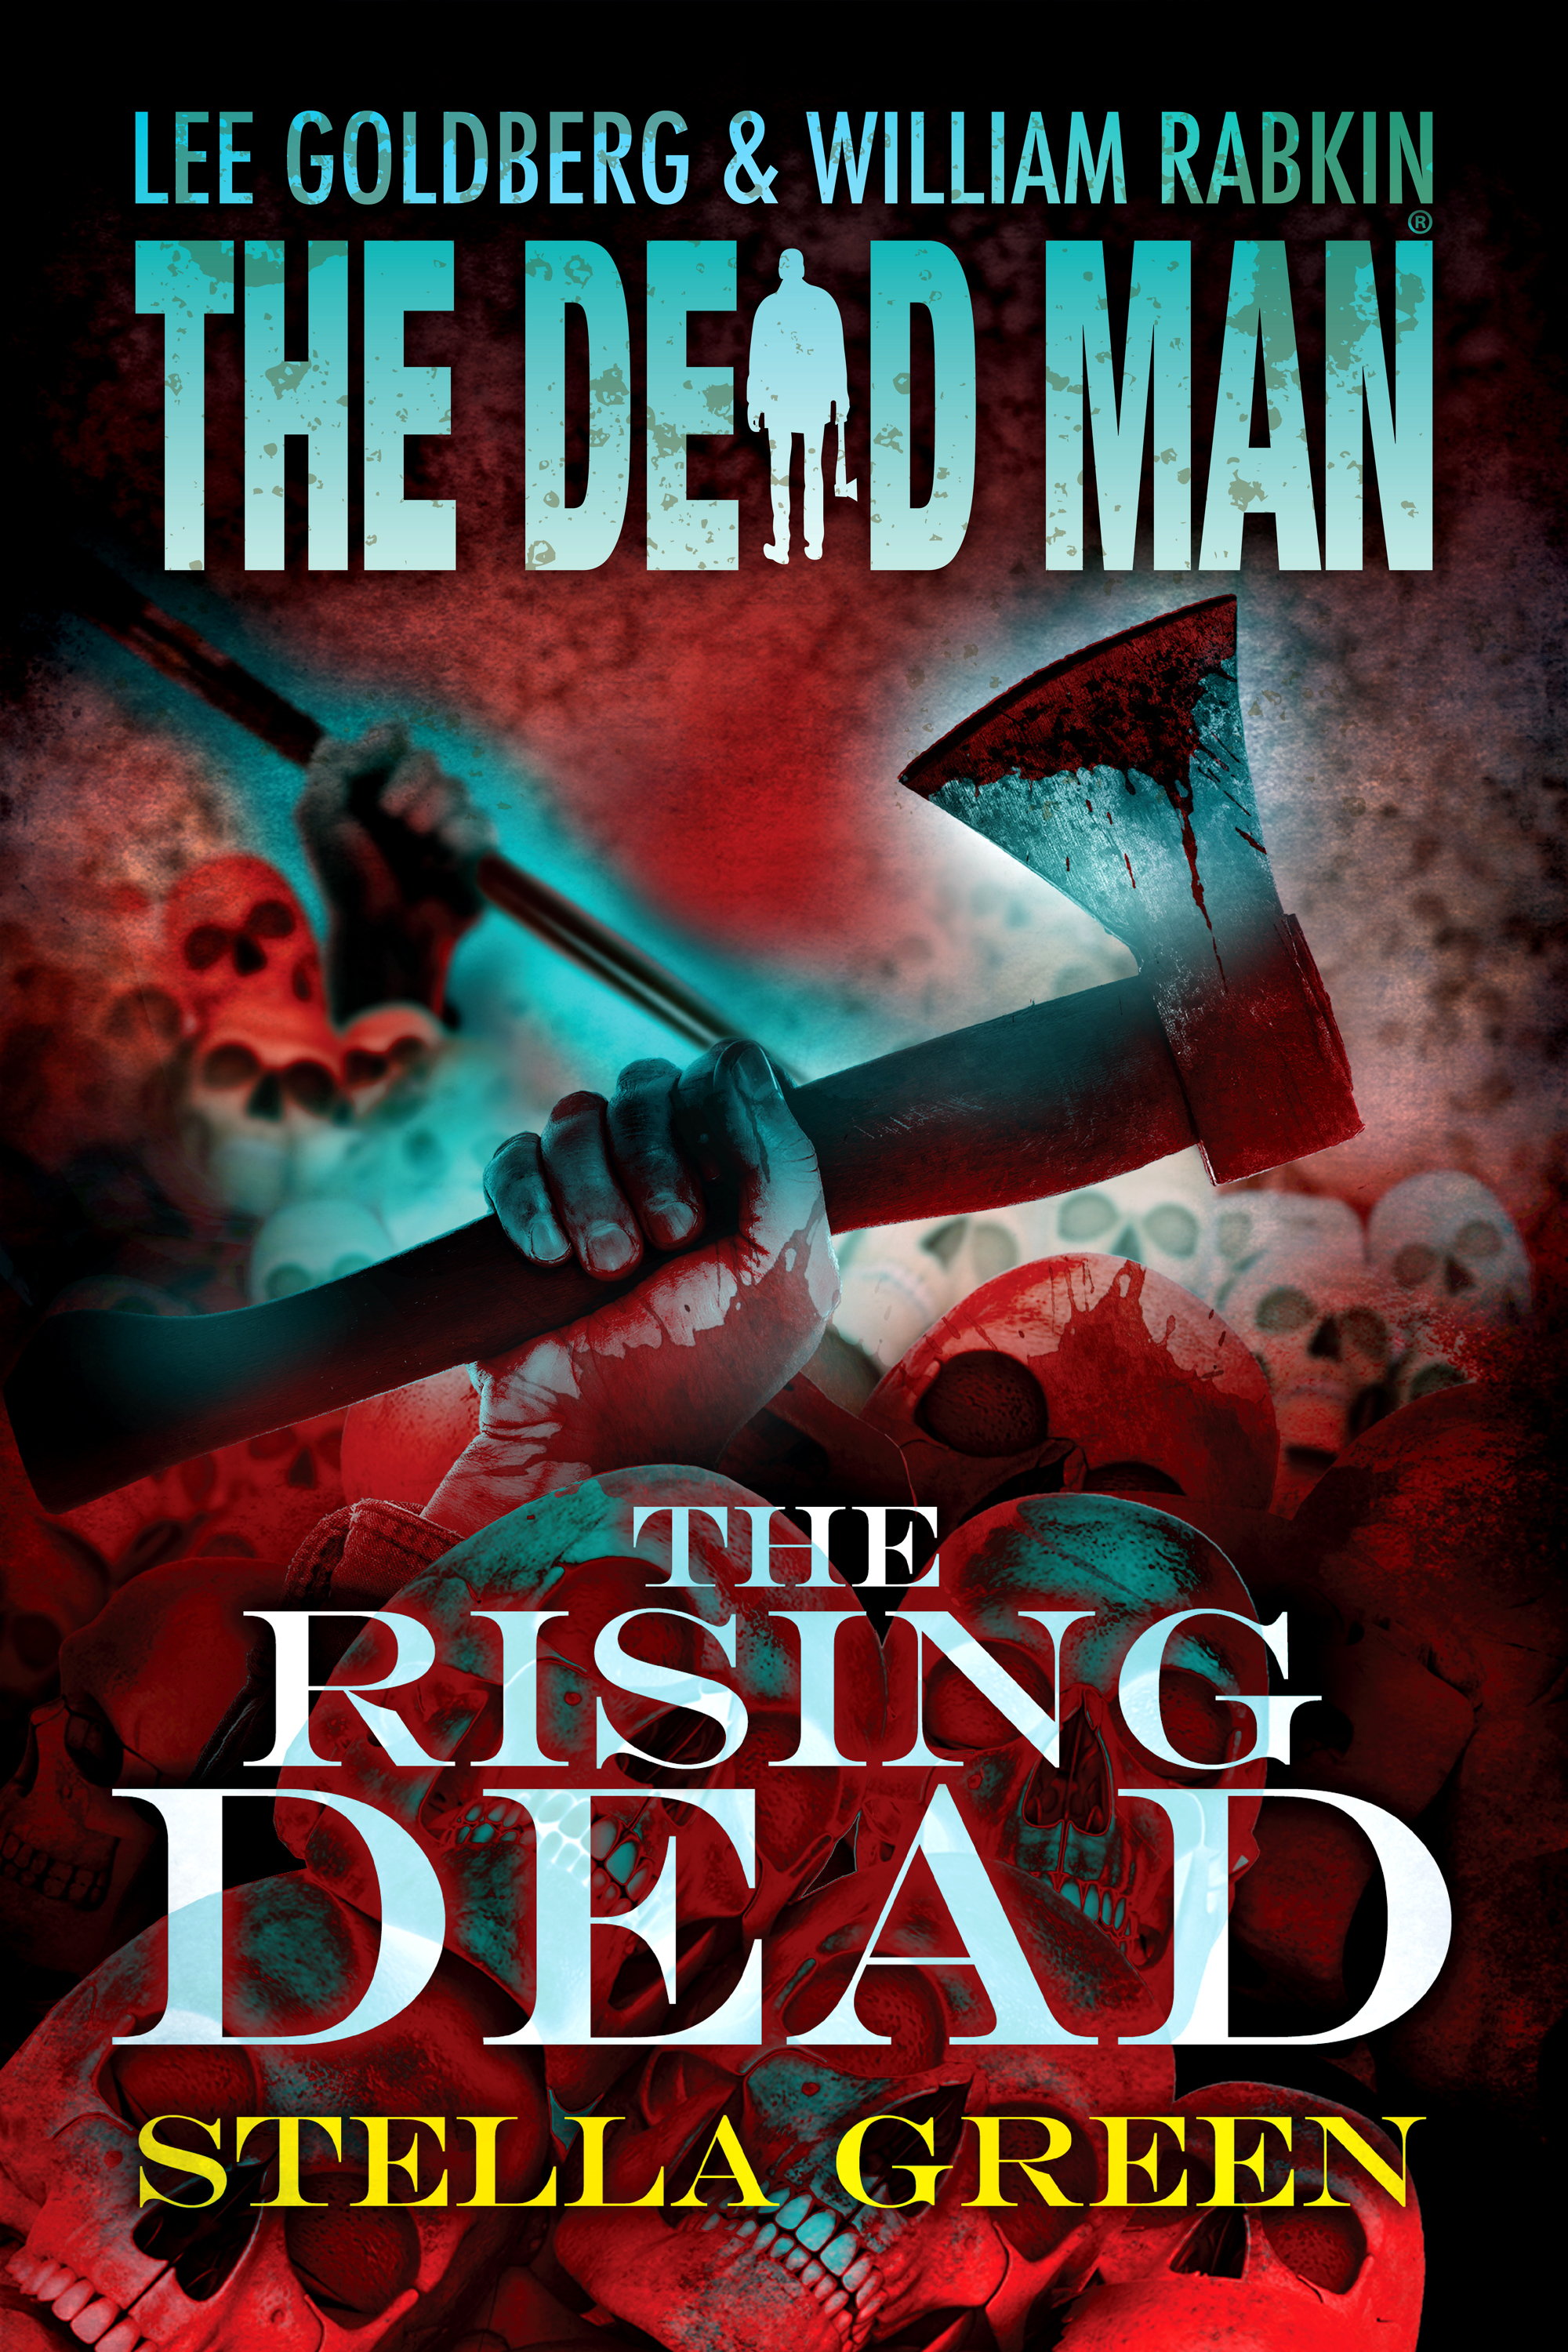 Man rising from the dead